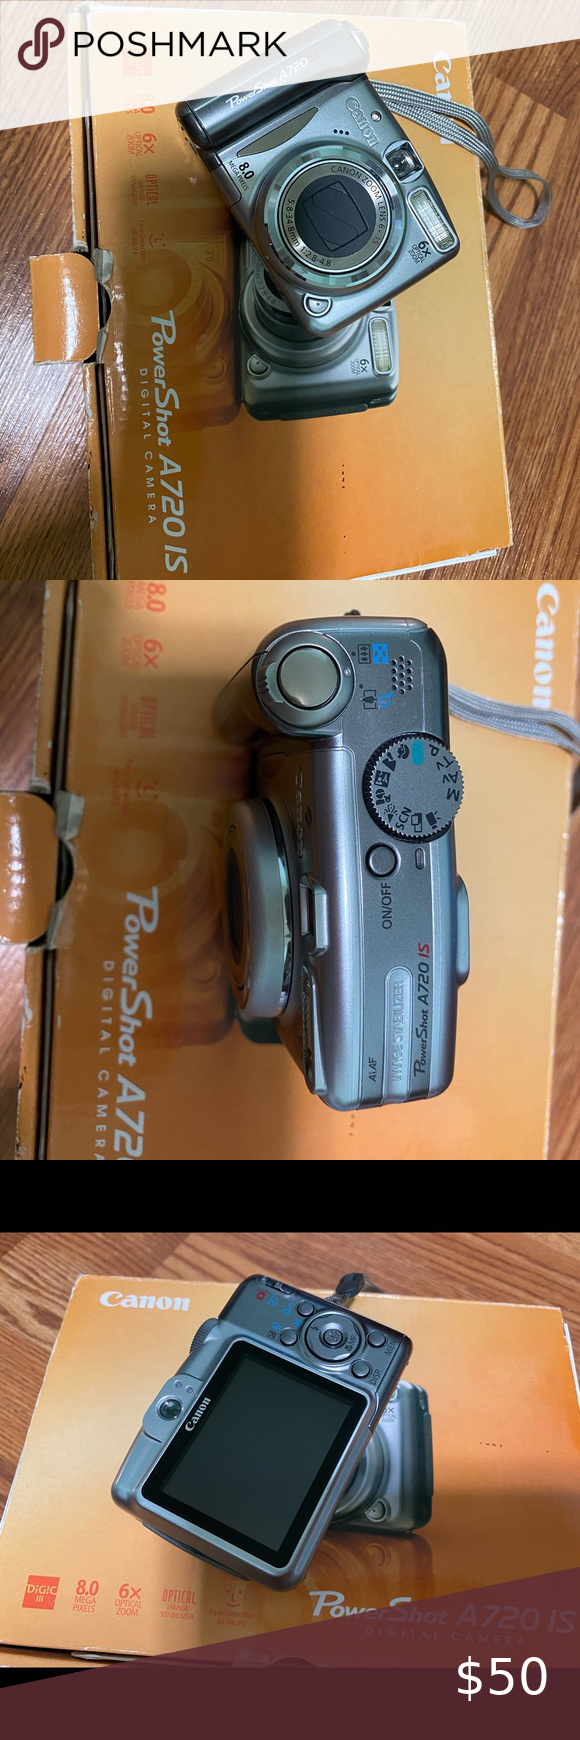 Sold Canon Powershot A720 Is Digital Camera Digital Camera Powershot Canon Powershot